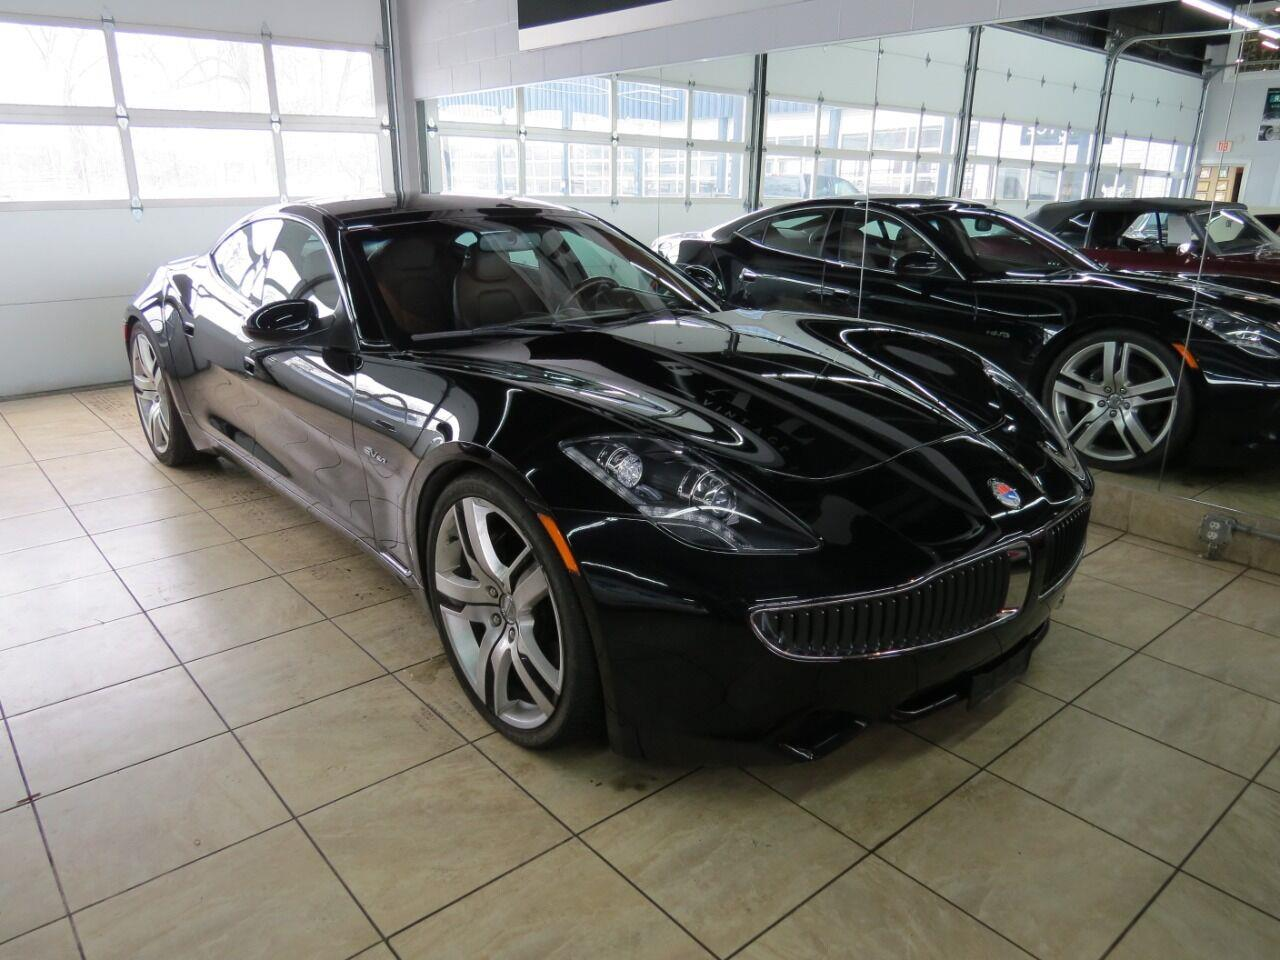 2012 Fisker Karma (CC-1443021) for sale in St. Charles, Illinois